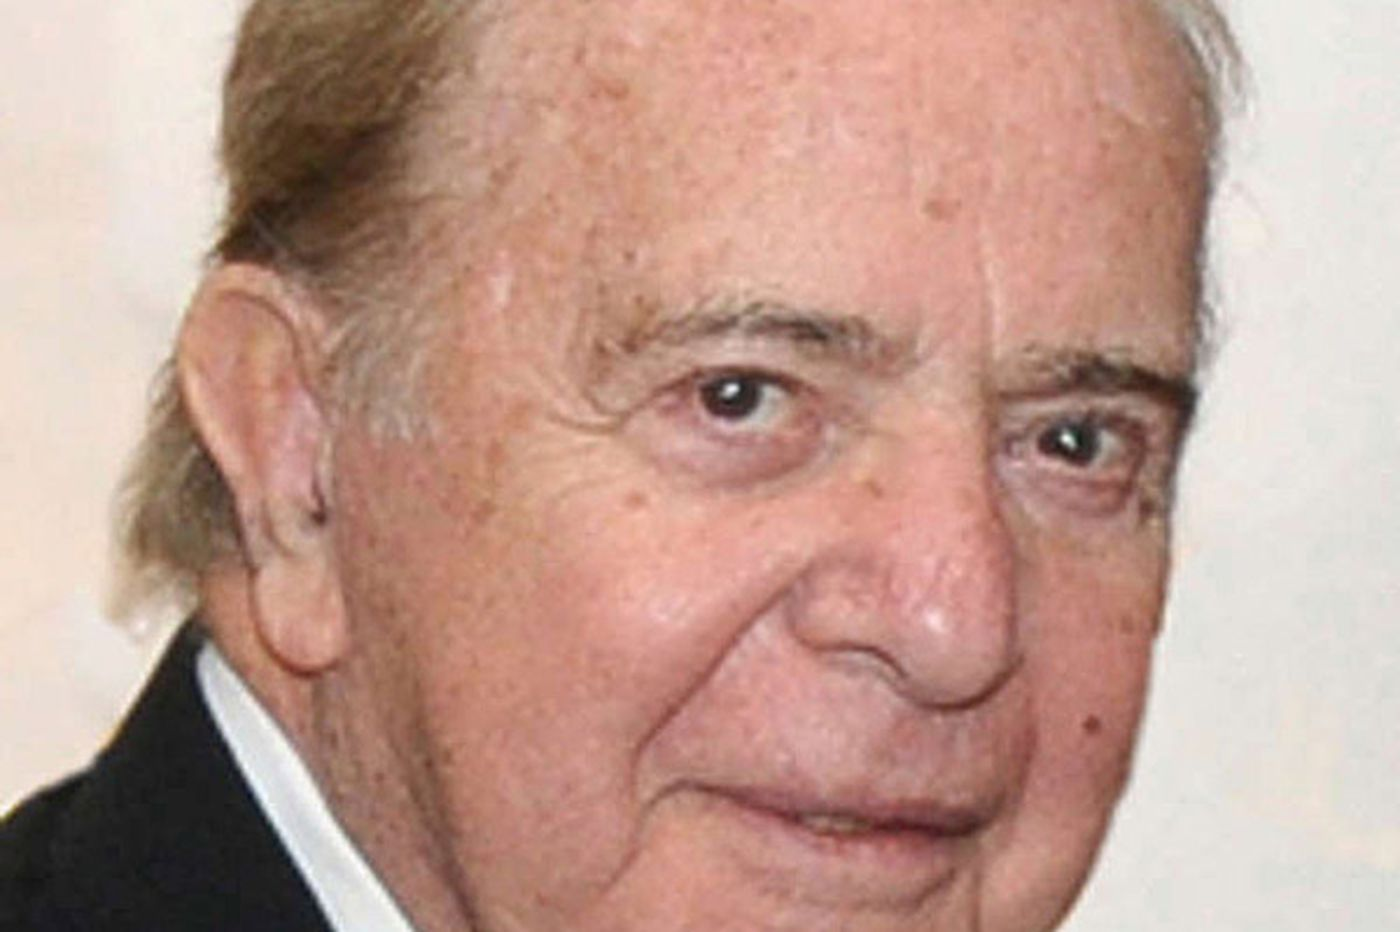 Irvin Borowsky, 90, publisher and philanthropist